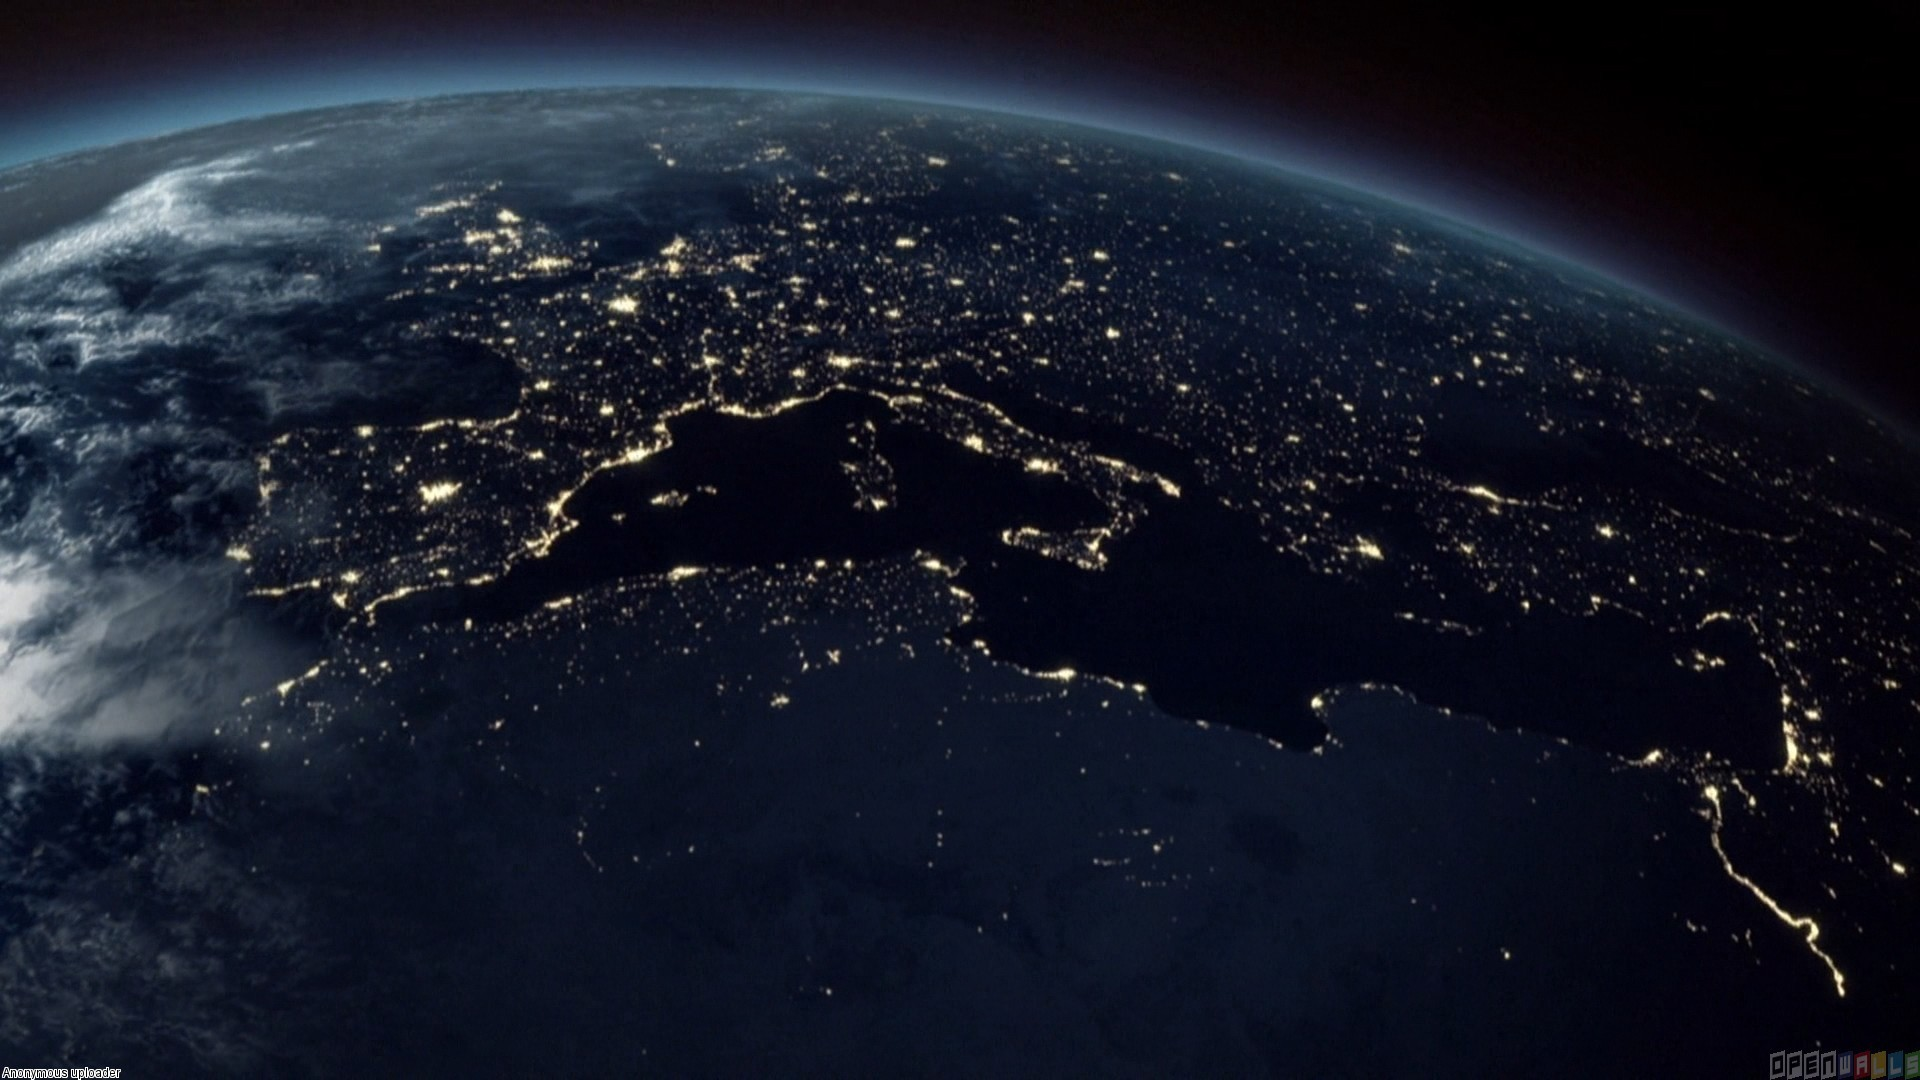 10 New Real Space Wallpapers 1920x1080 Full Hd 1080p For: Space Screensavers And Wallpaper (68+ Images